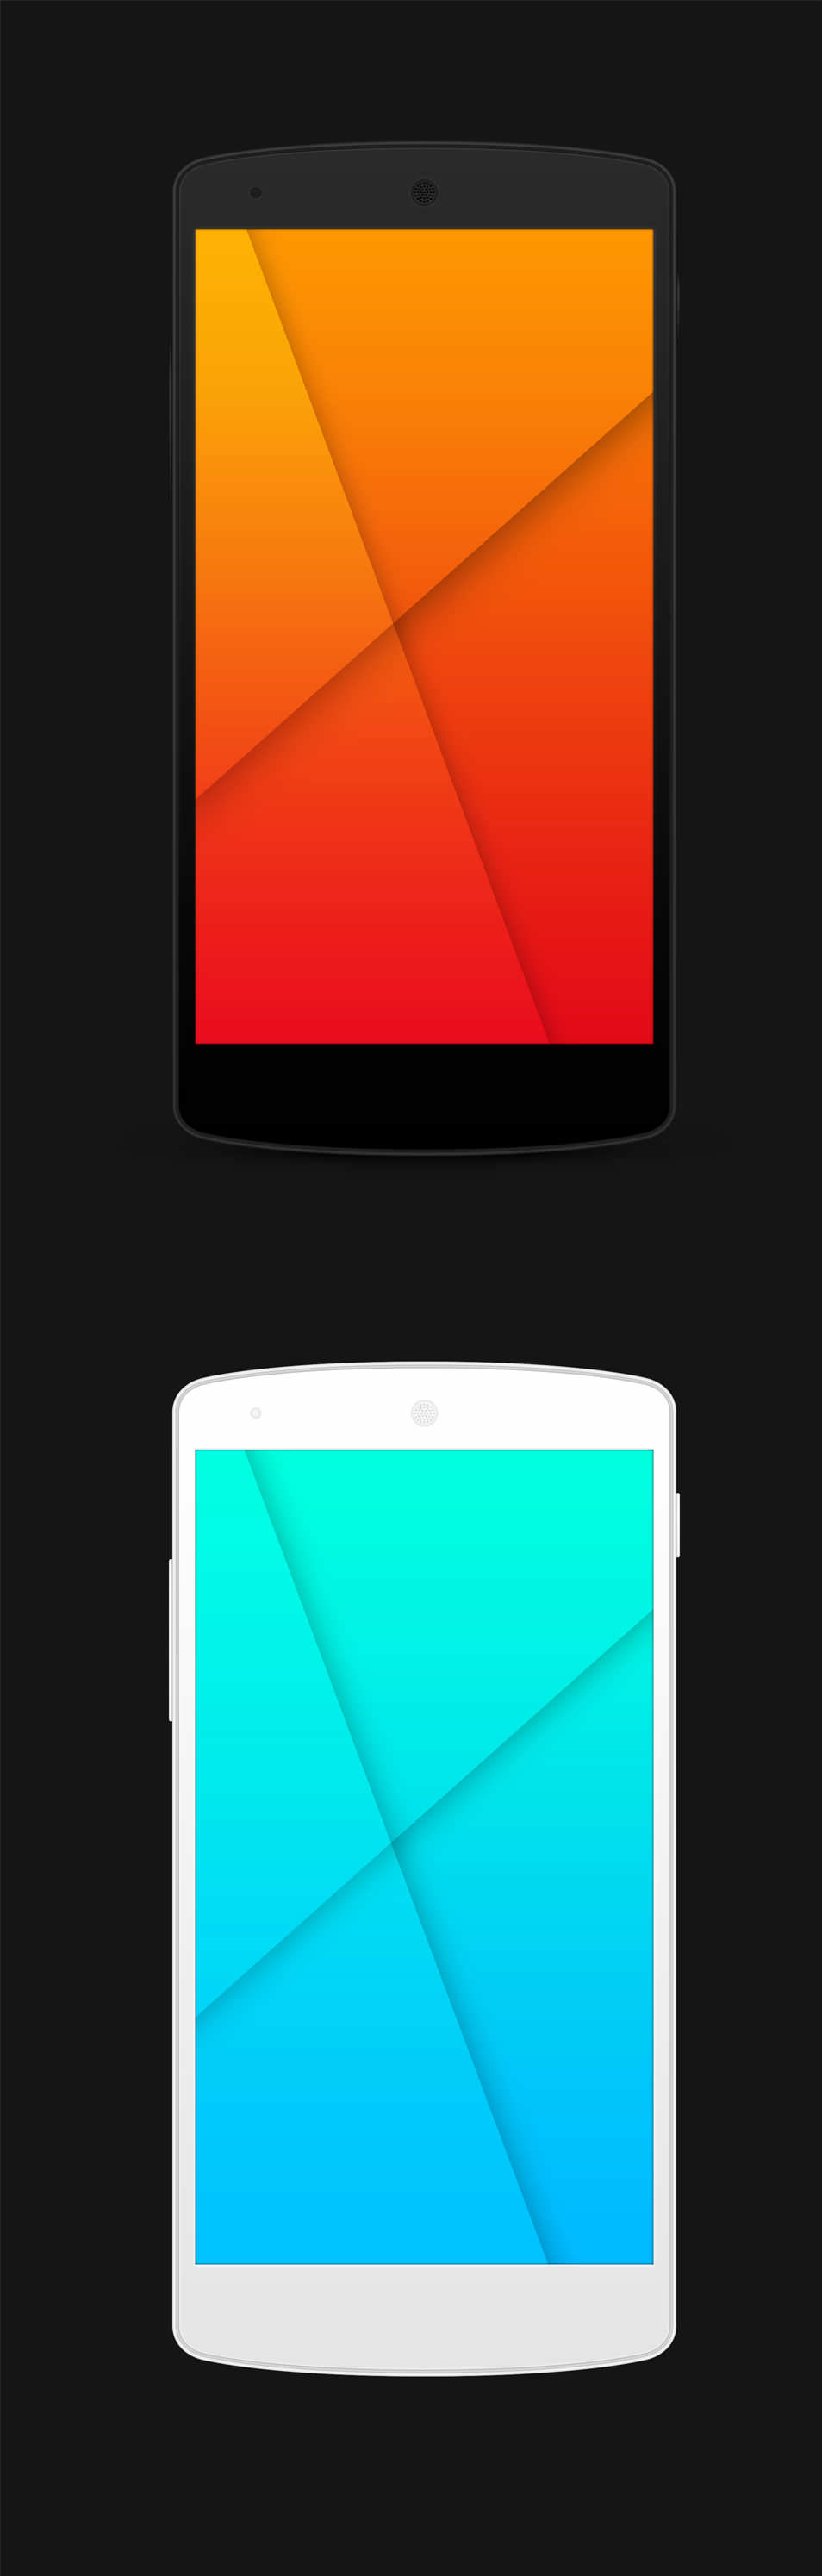 Free & Open Source Nexus 5 PSD Templates